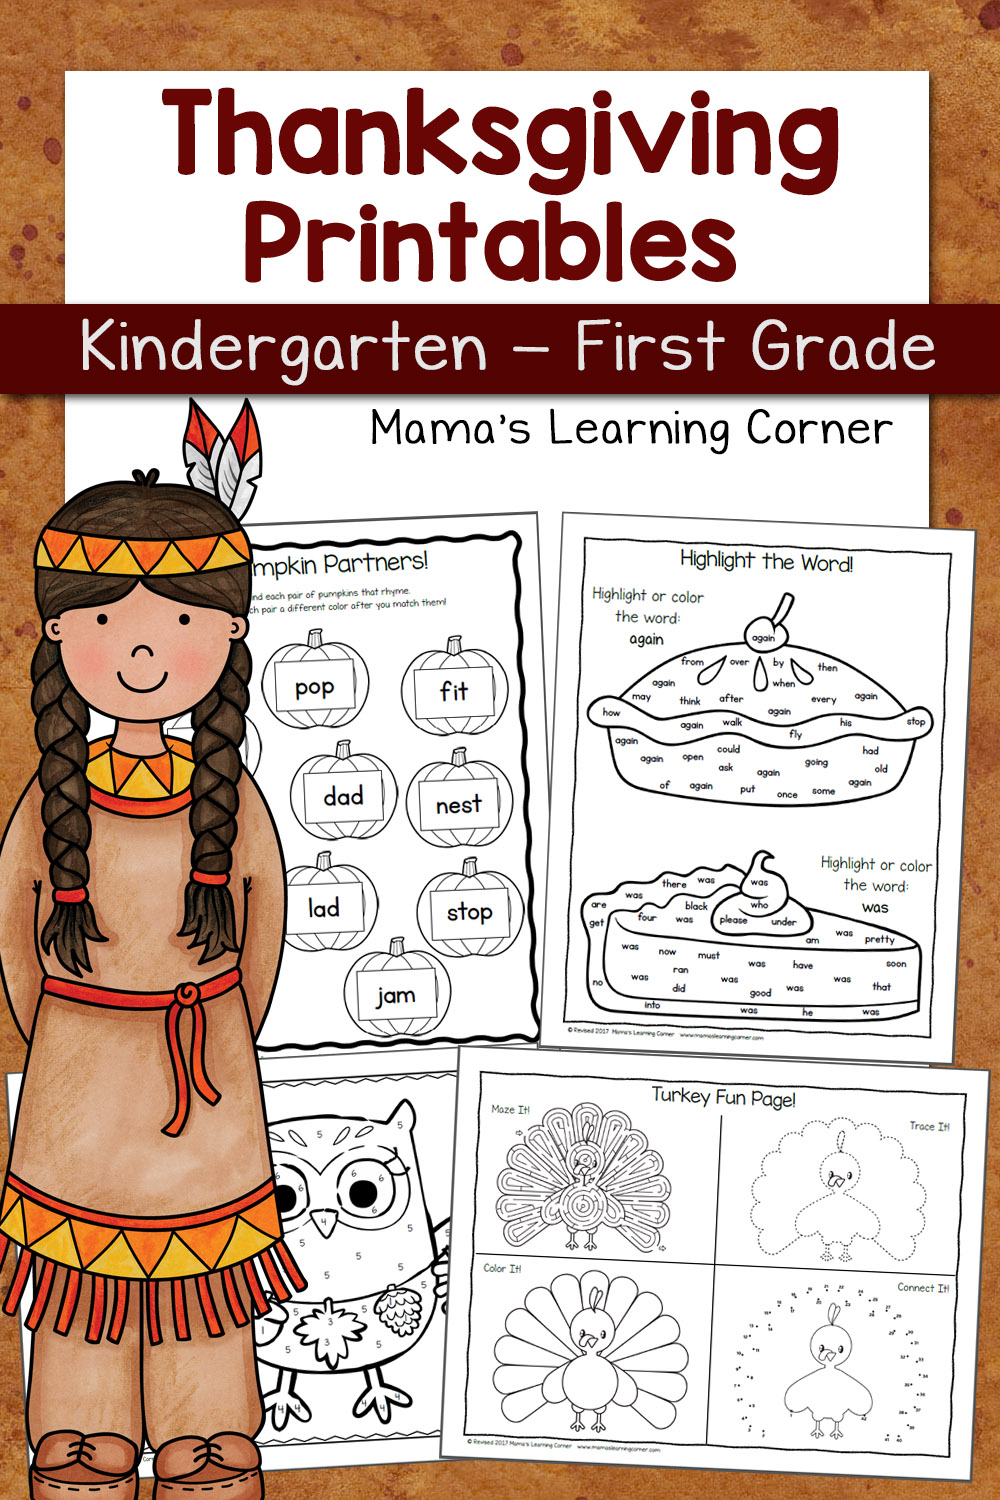 - Thanksgiving Worksheets For Kindergarten And First Grade - Mamas